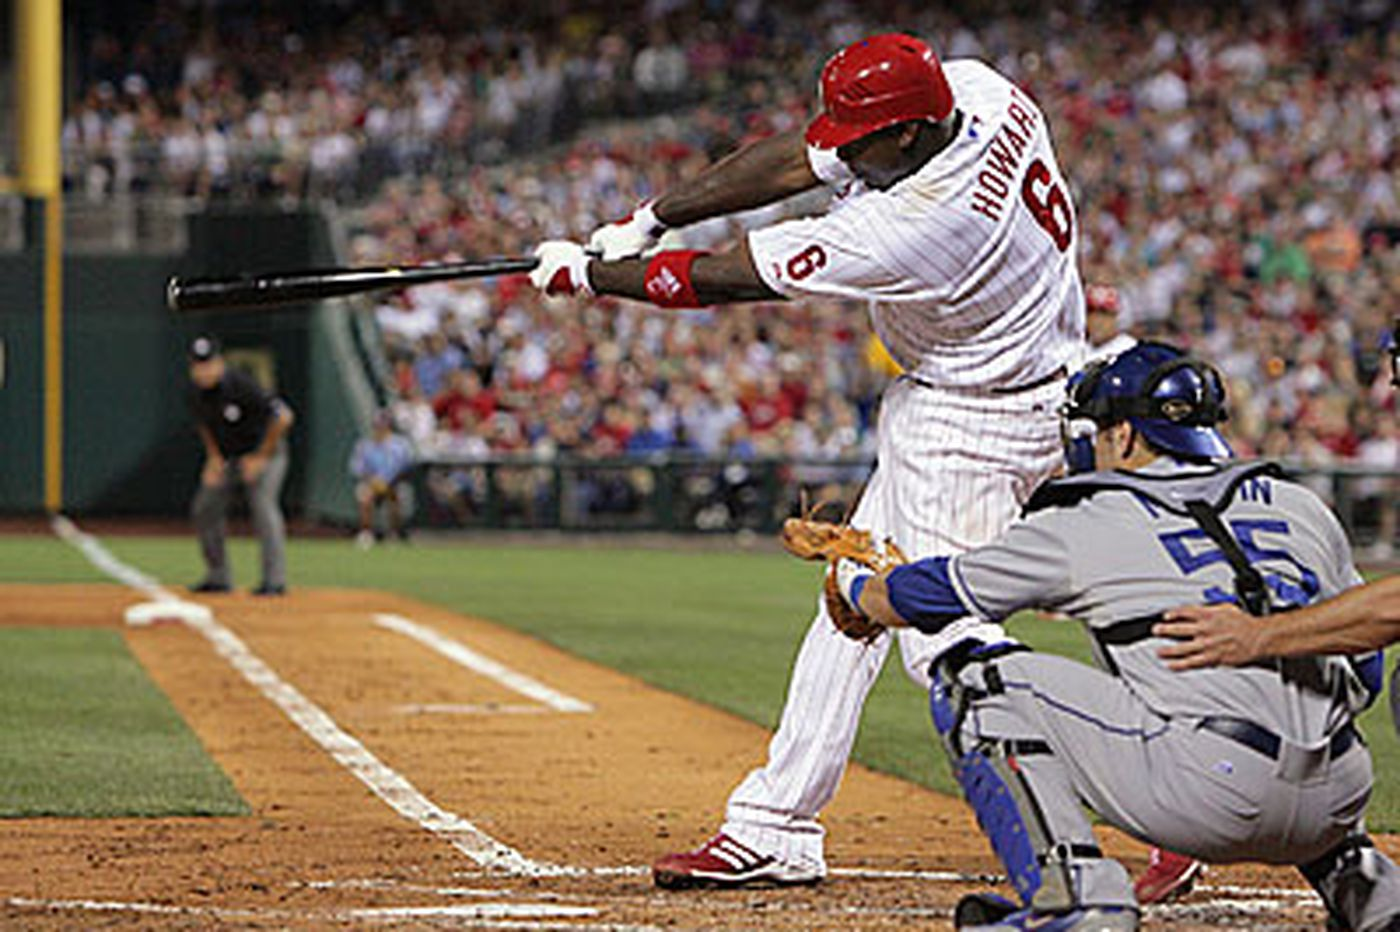 Phillies' win fueled by homers